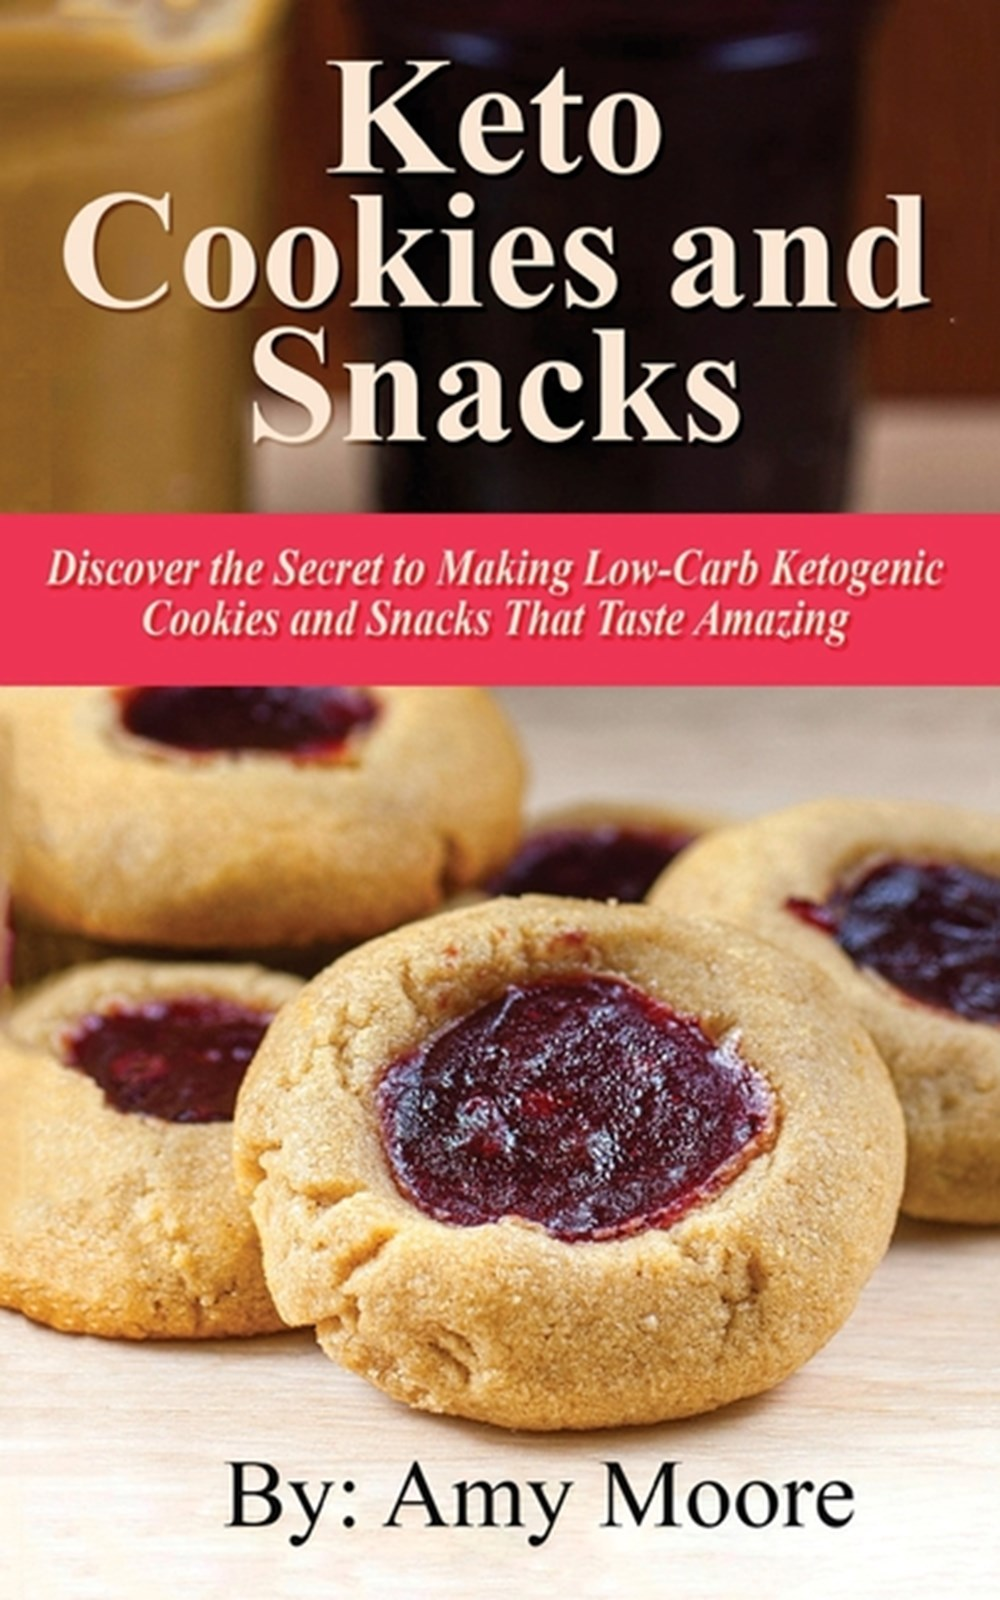 Keto Cookies and Snacks Discover the Secret to Making Low-Carb Ketogenic Cookies and Snacks That Tas